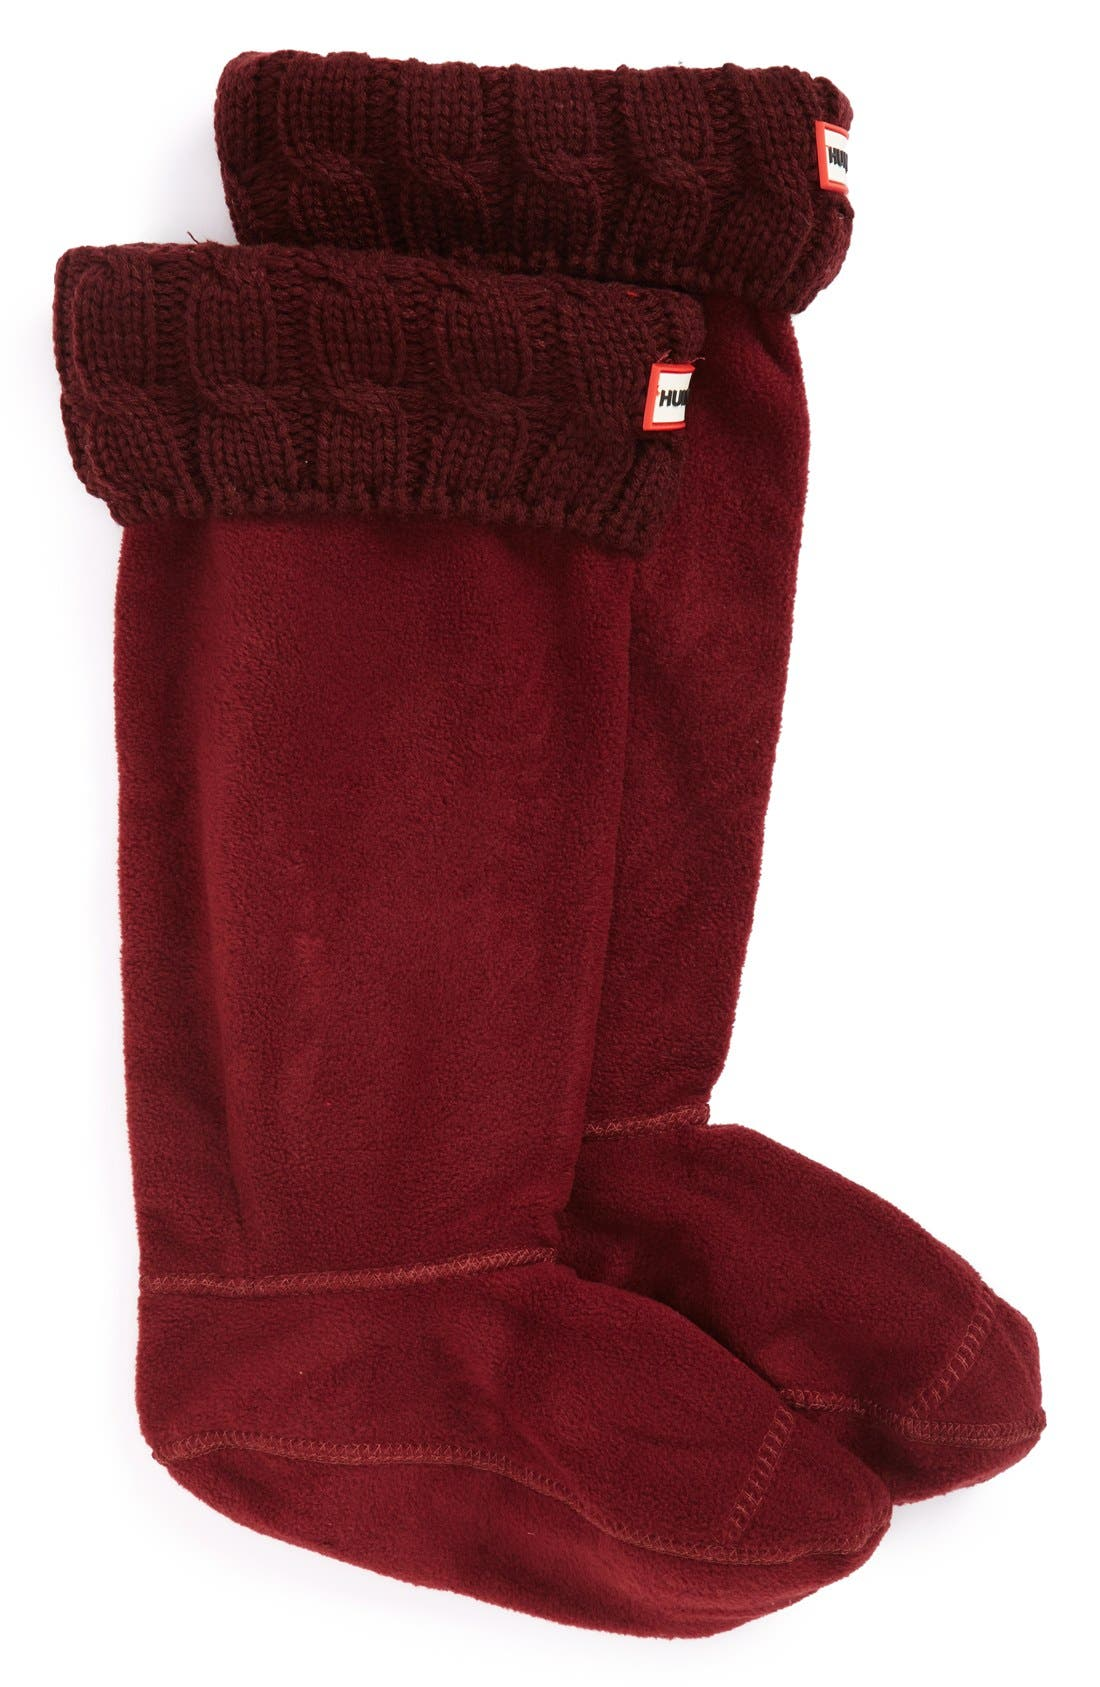 Original Tall Cable Knit Cuff Welly Boot Socks,                             Main thumbnail 9, color,